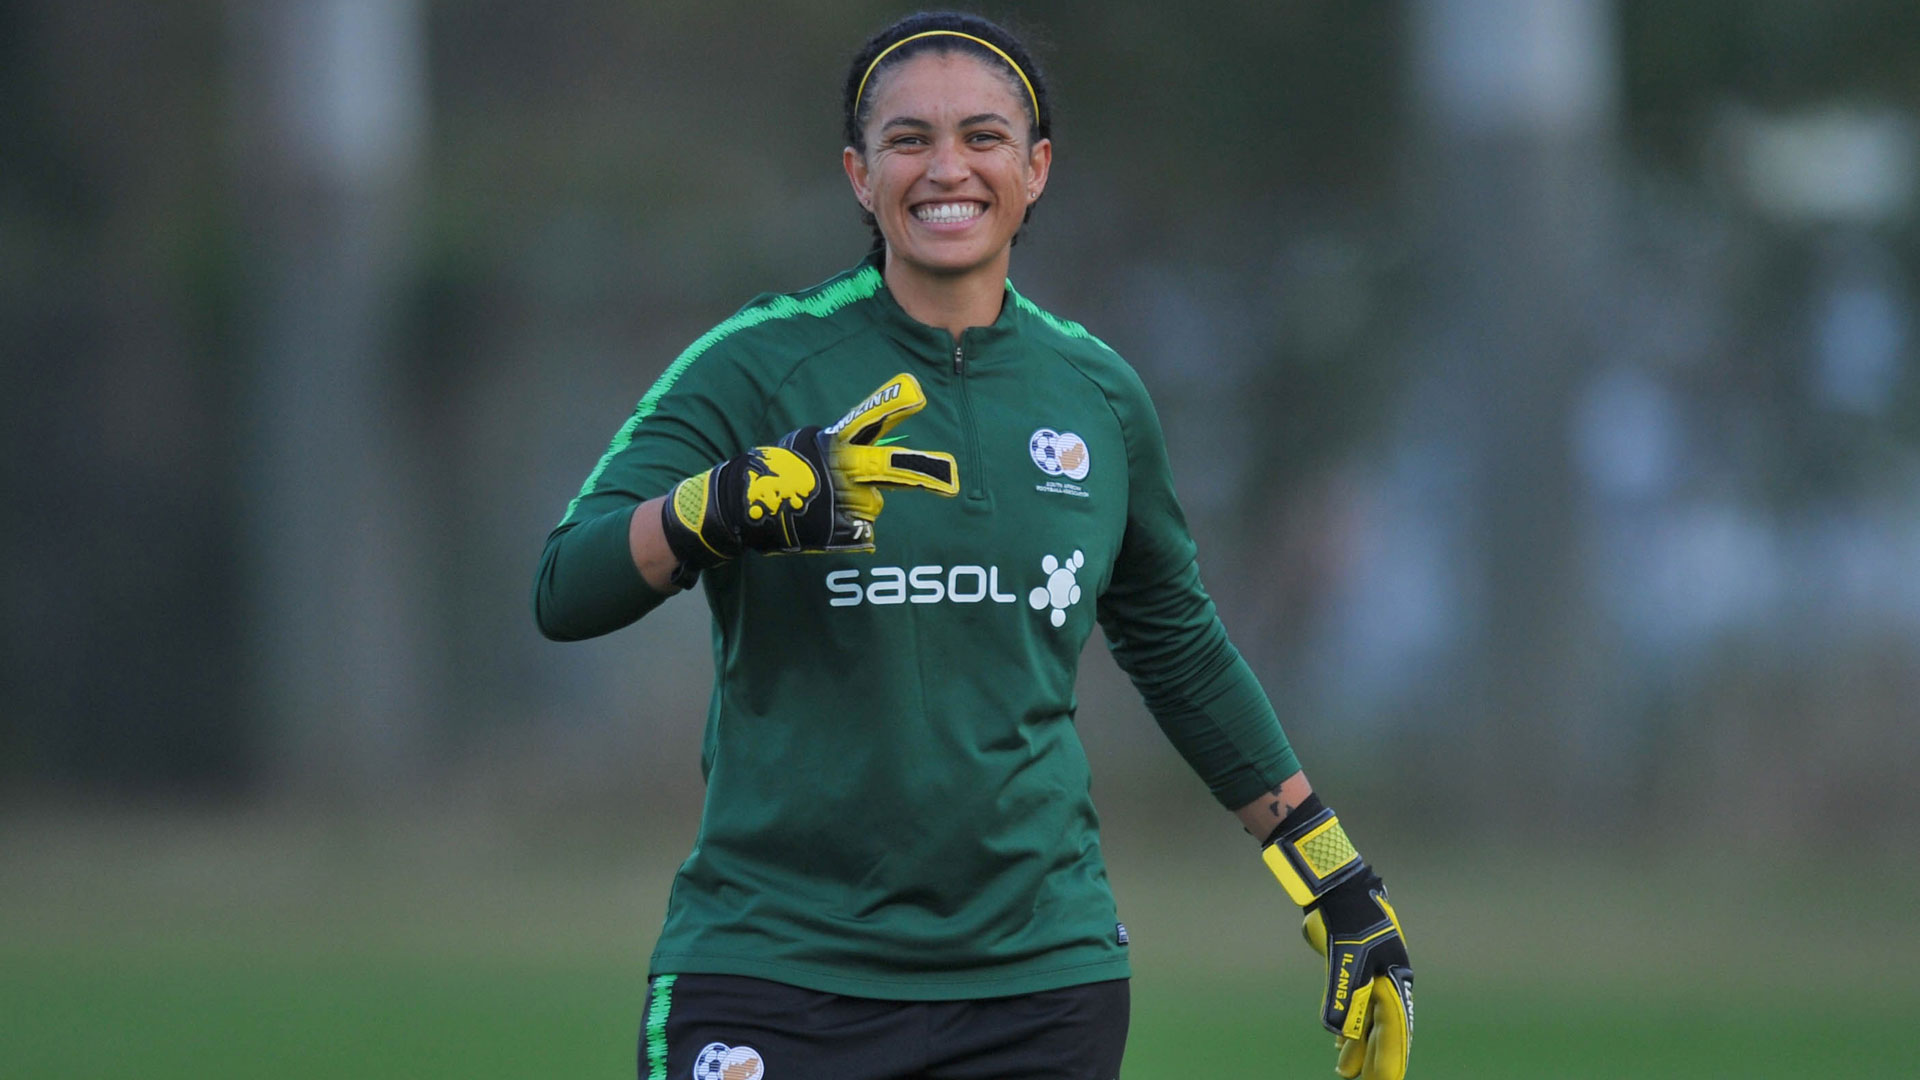 Banyana Banyana goalkeeper Kaylin Swart poses during a training session